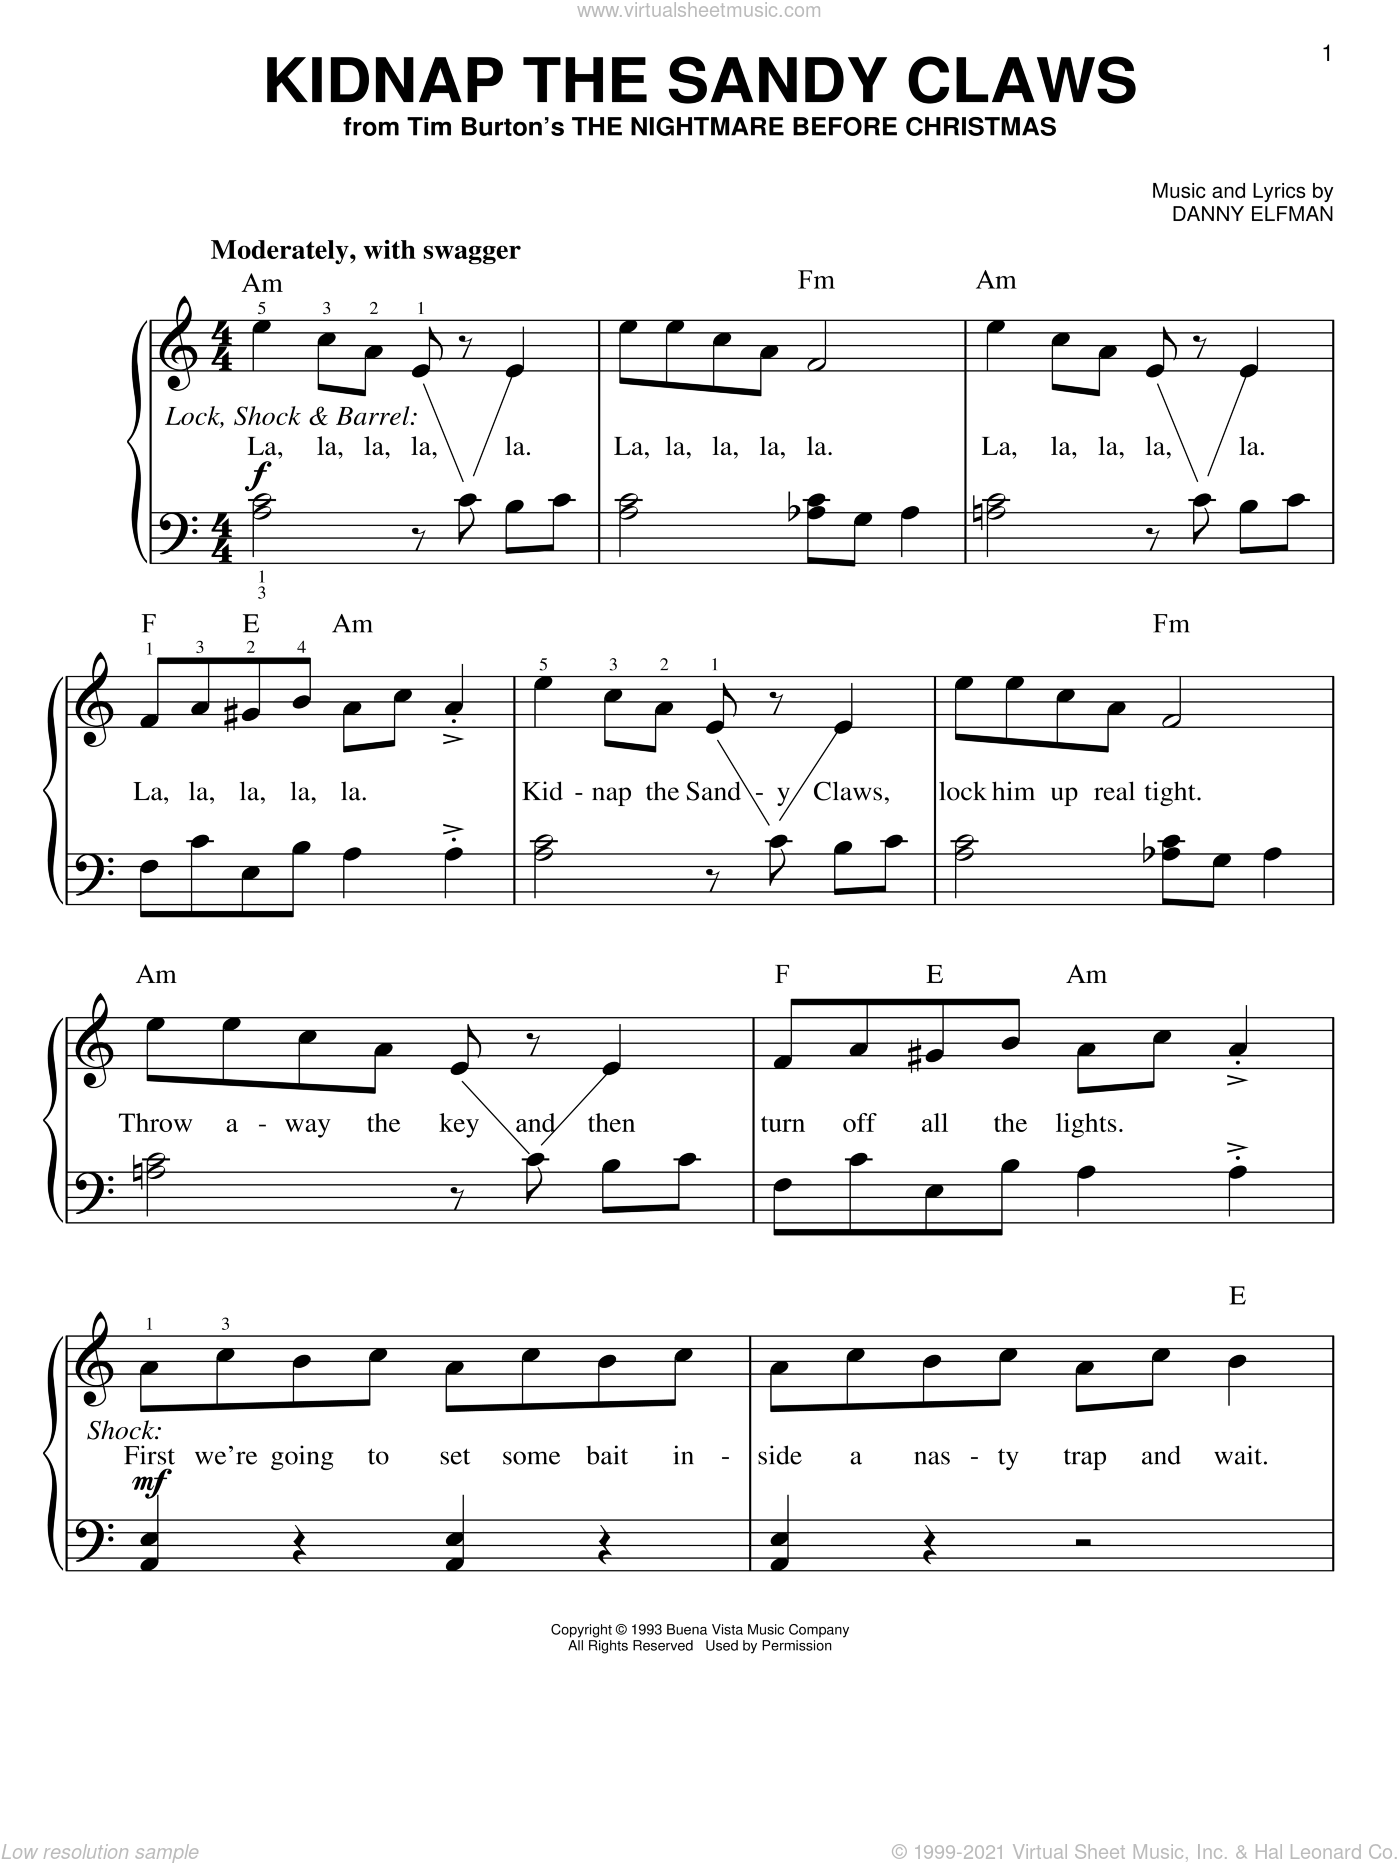 Kidnap The Sandy Claws (from The Nightmare Before Christmas) sheet music for piano solo by Danny Elfman and The Nightmare Before Christmas (Movie), easy skill level